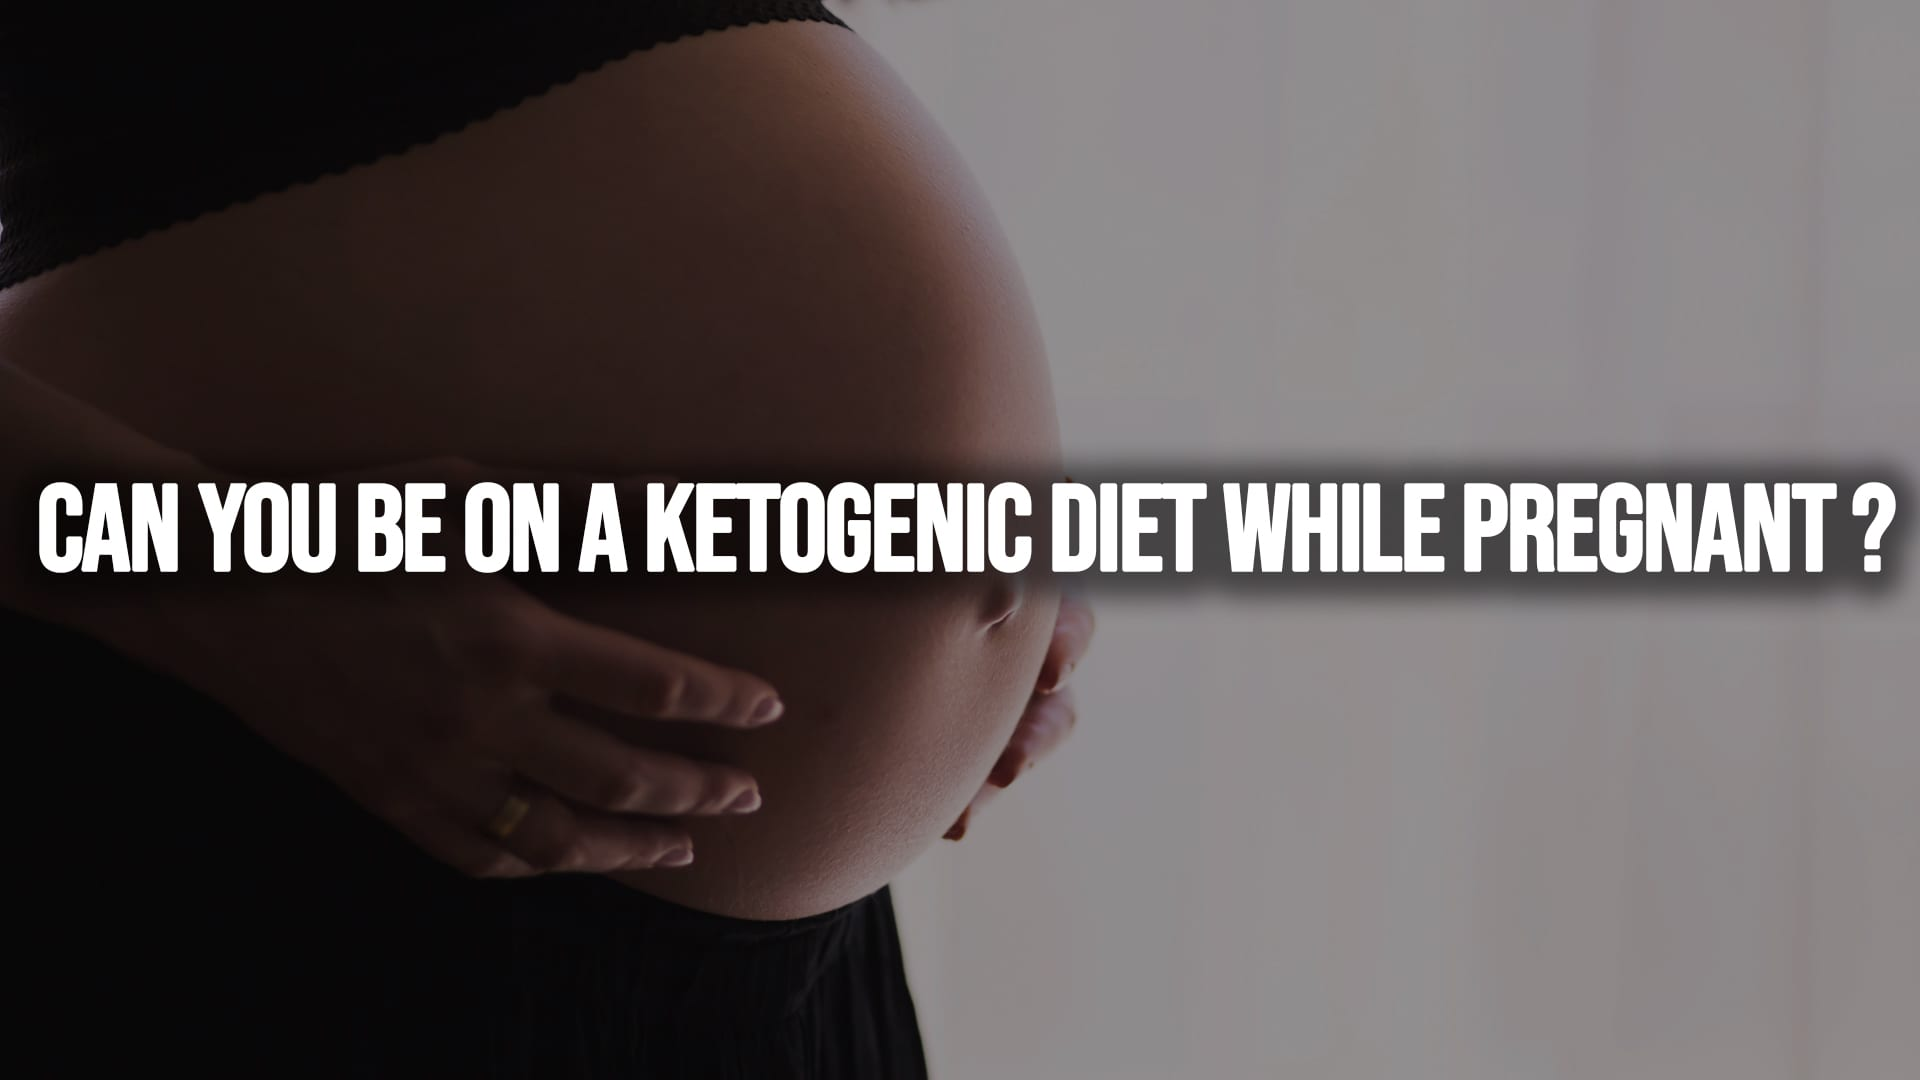 Can You be on Keto While Pregnant?